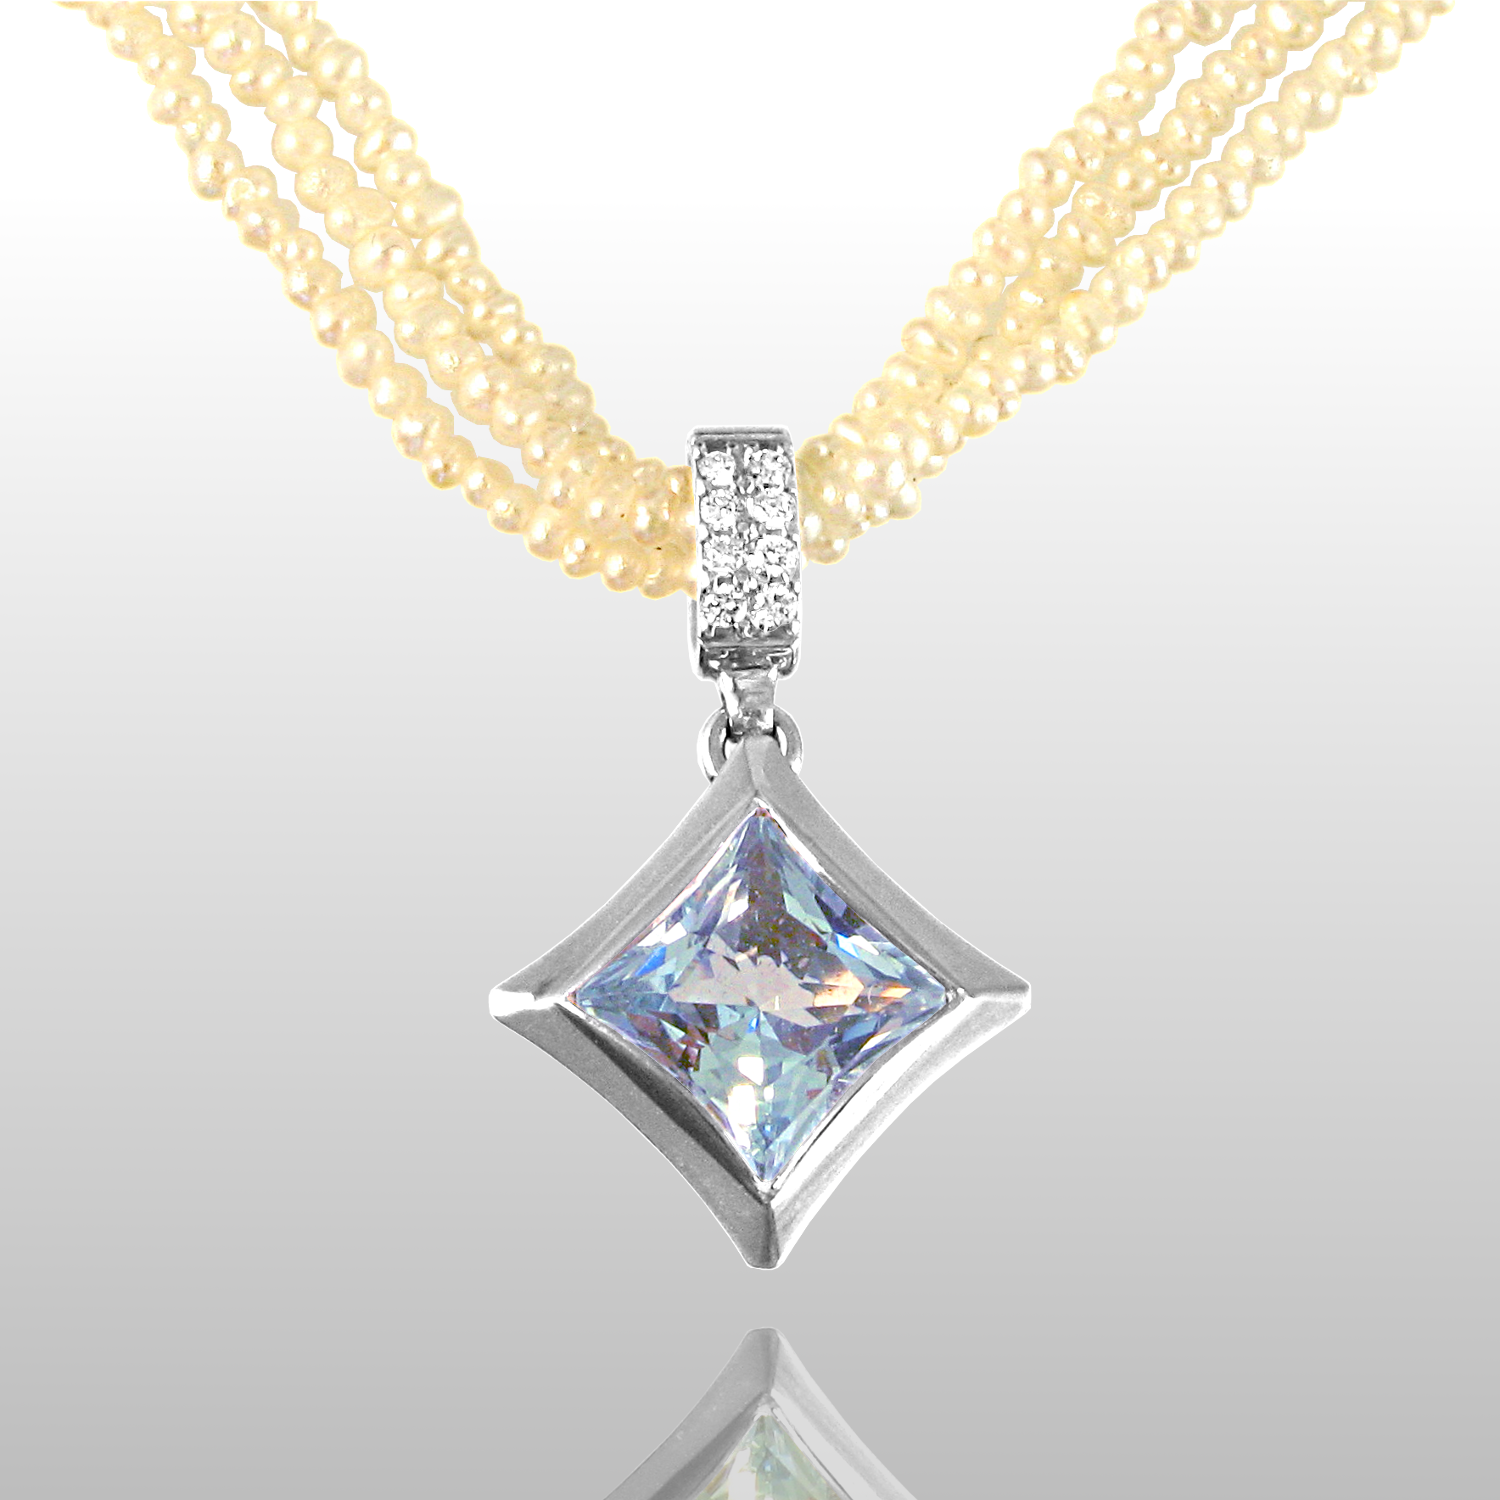 Aquamarine Pendant 'Caro' with Diamonds in 18k White Gold - Seed Pearl Necklace from the Spectrum Collection by Pratima Design Fine Art Jewelry Maui